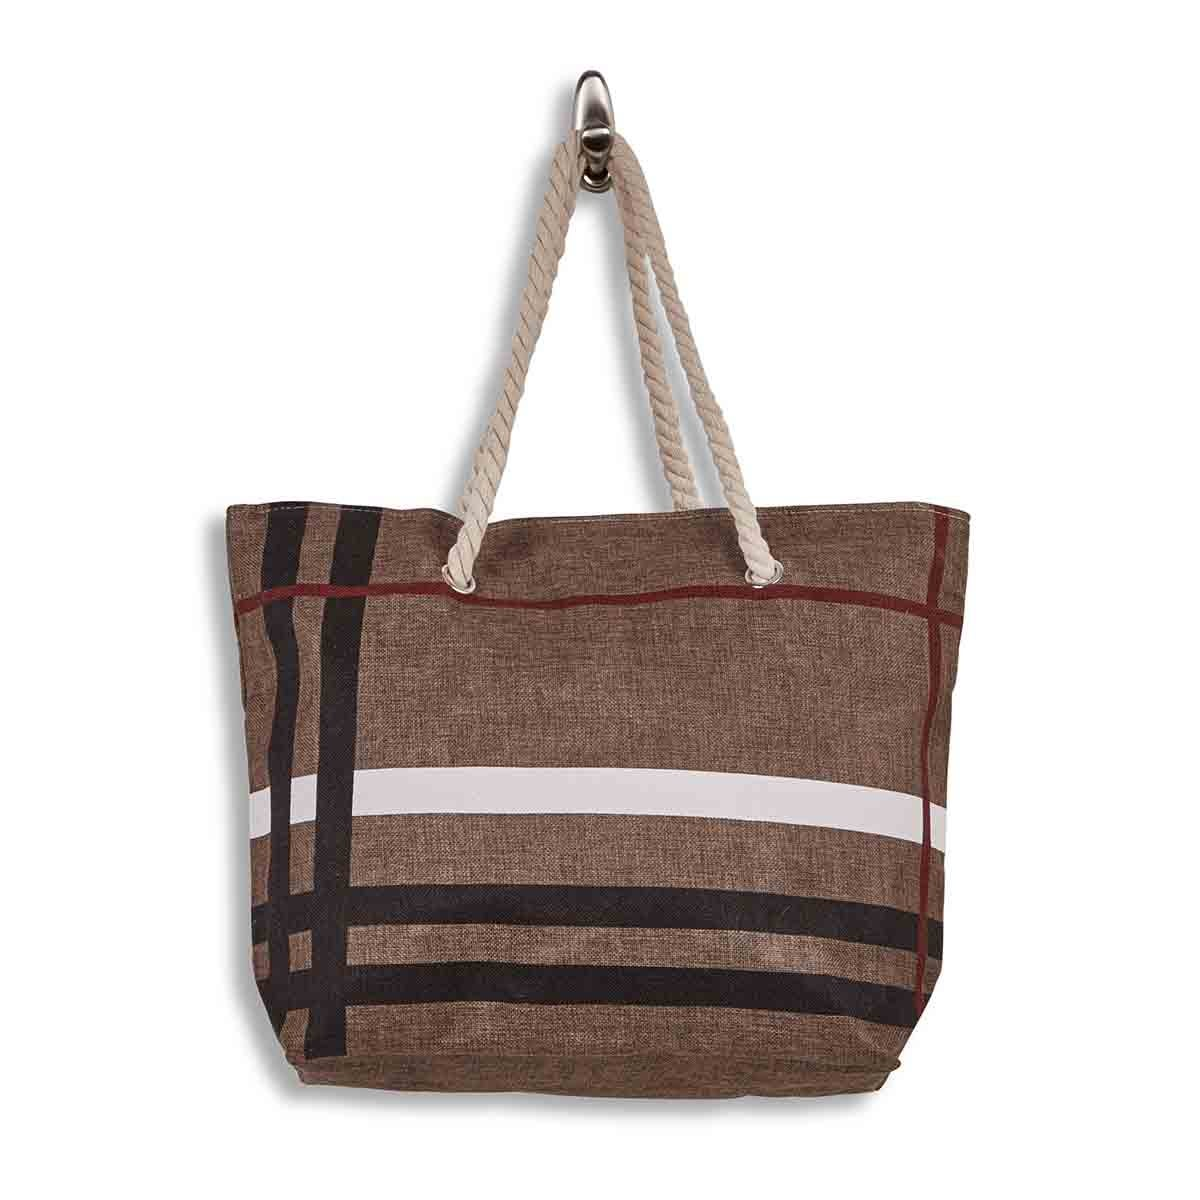 Lds camel large canvas tote bag